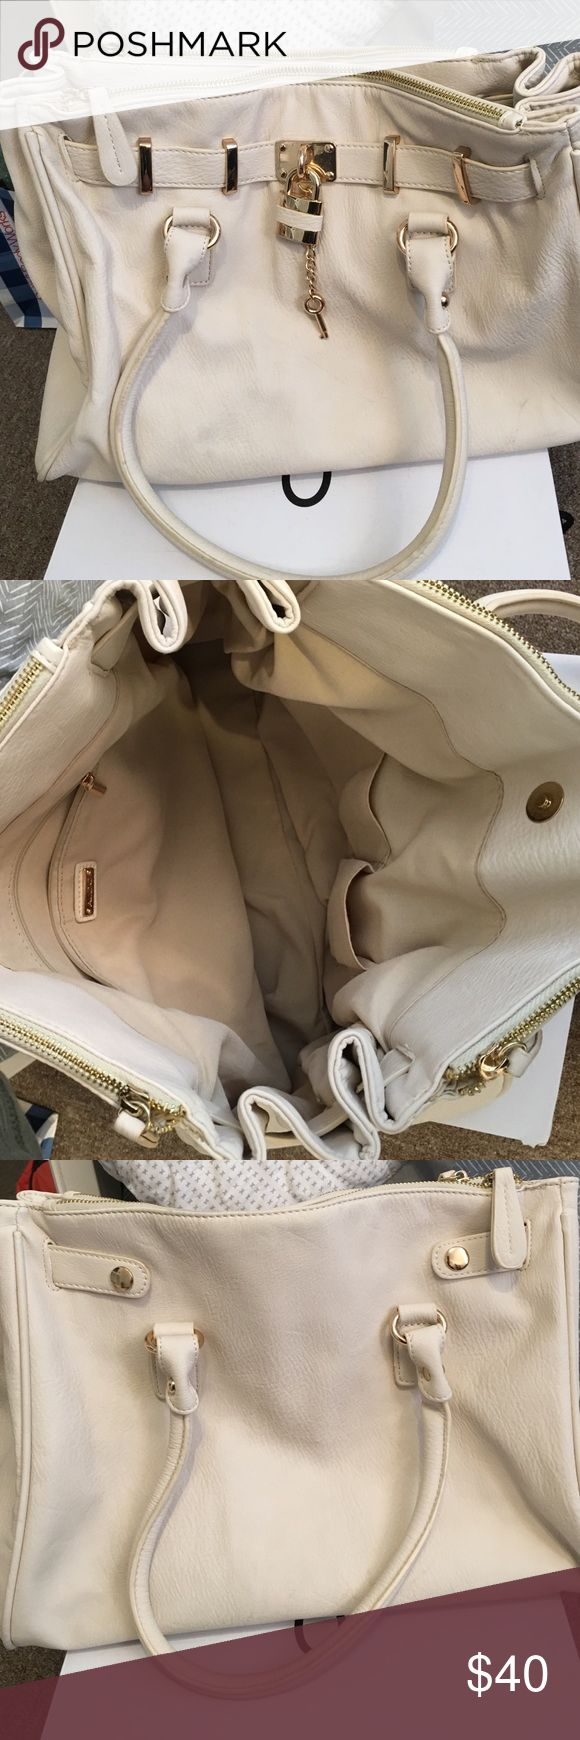 Aldo tote bag! In off white. Super cute. I got this bag and have only used it once! It's still in good condition. Super cute and roomy for your necessities! I have no use for it, and I rather sell it to someone who will. Aldo Bags Totes